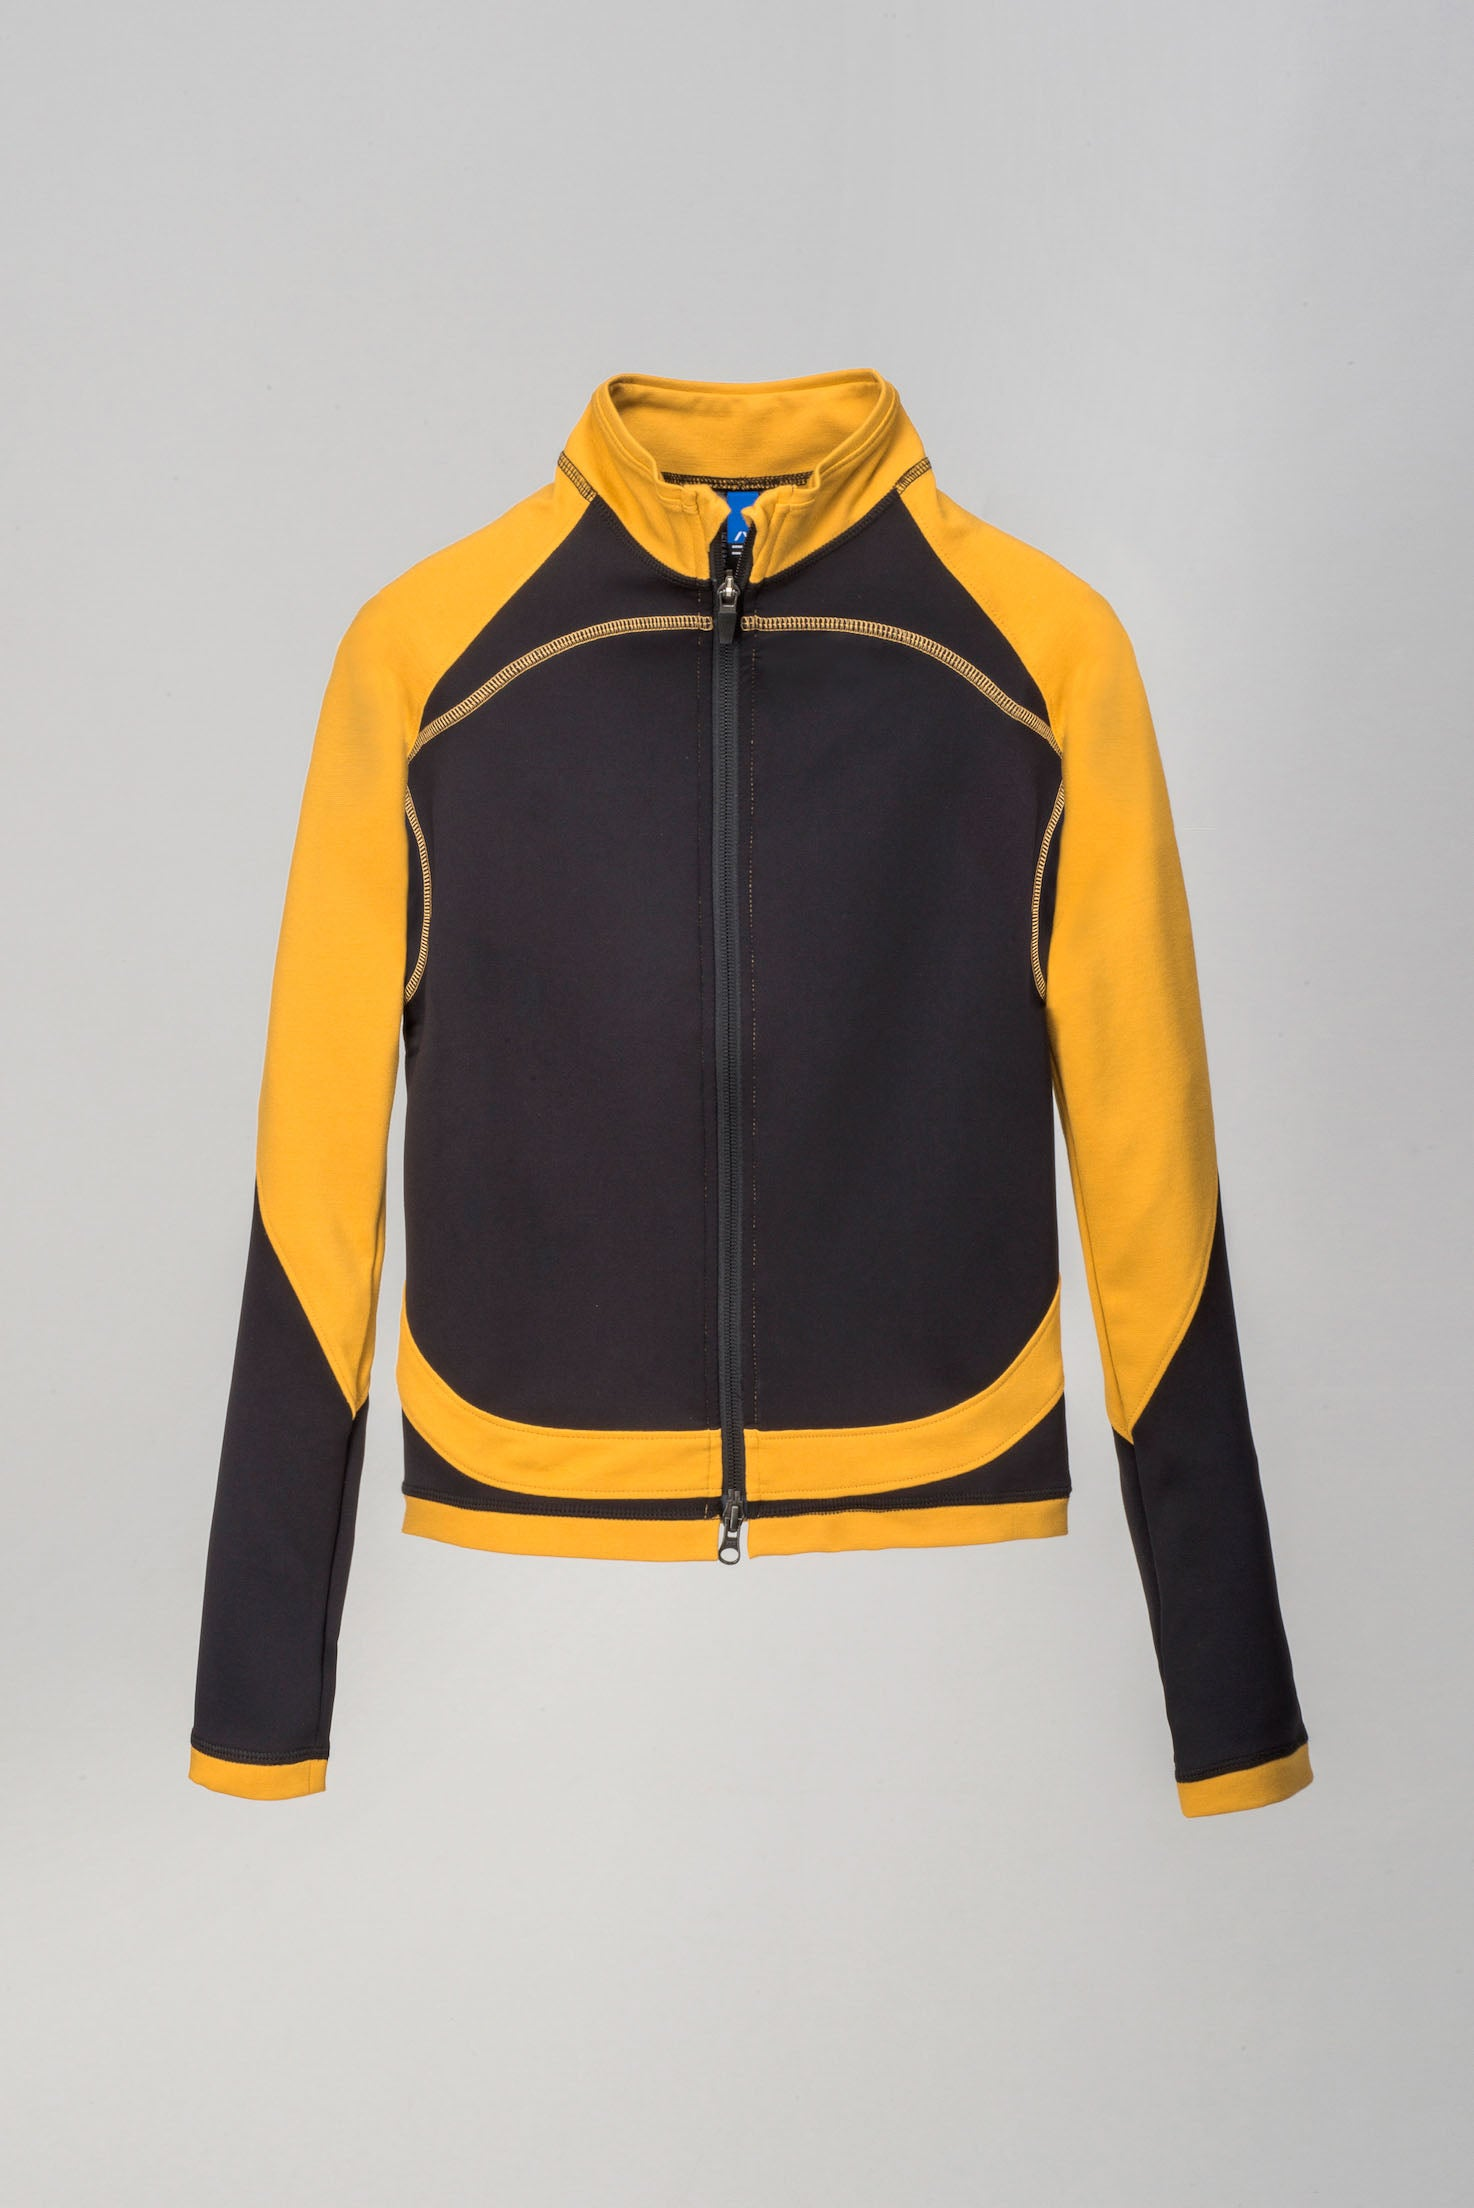 Fusion Rider Jersey Yellow